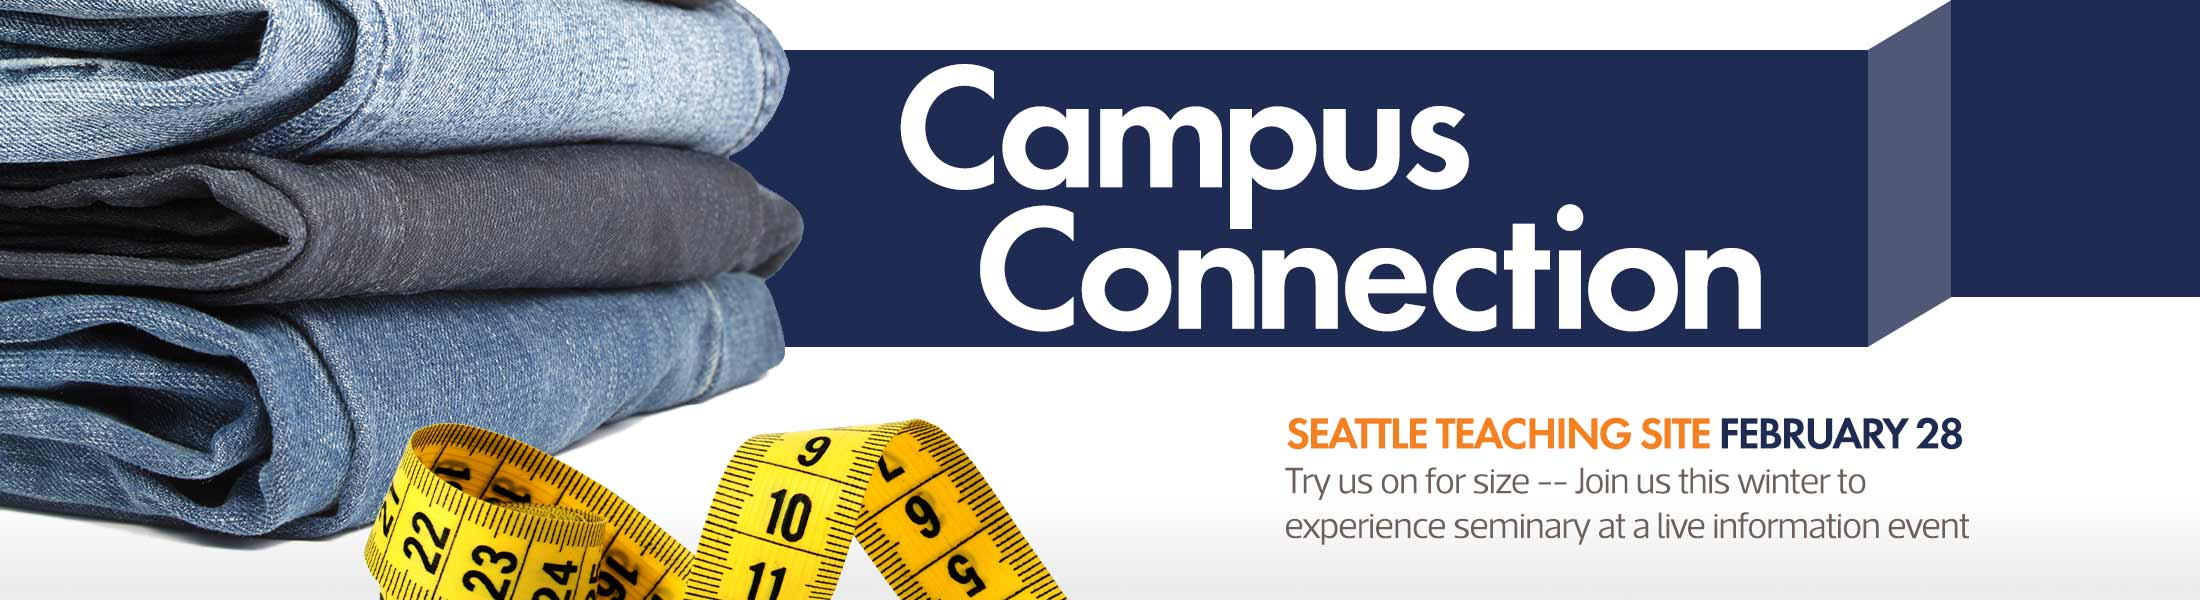 Campus Connection - Information Events at Western Seminary